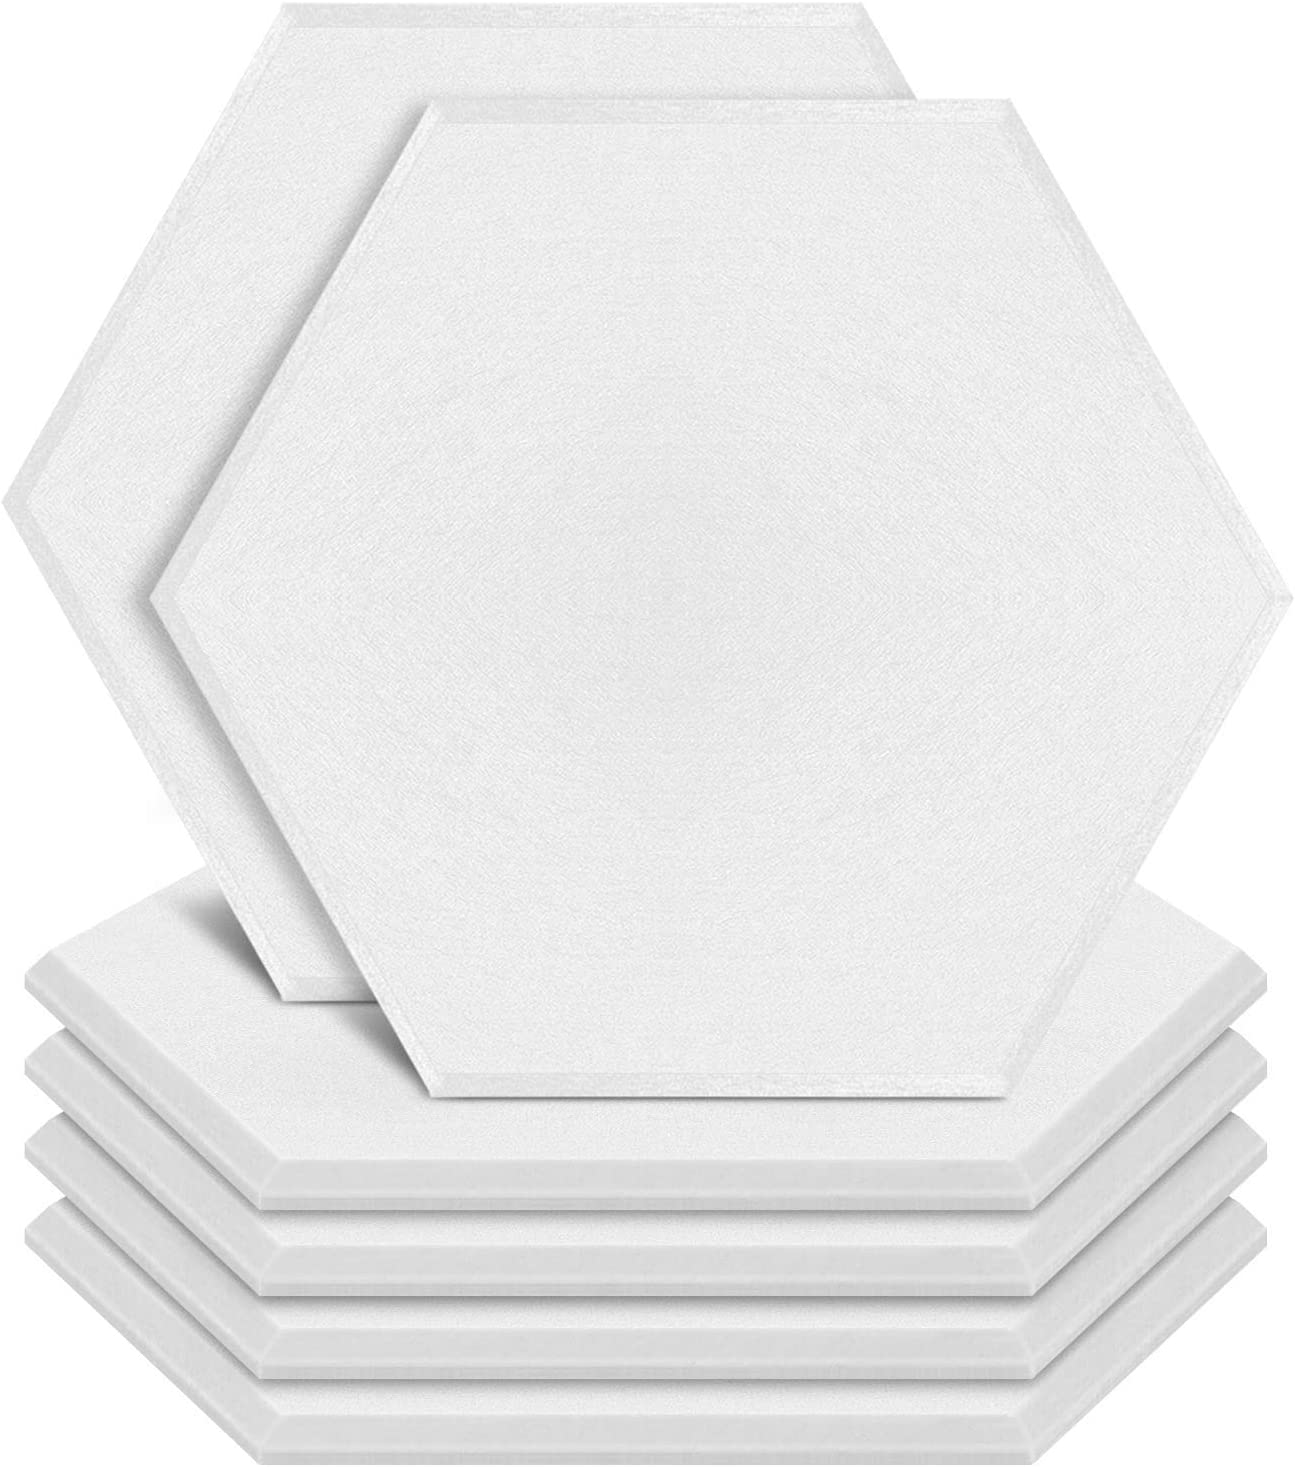 ZHERMAO 6 Pack Acoustic Panels Sound Proof Padding,14 X 13 X 0.4 Inches Sound Dampening Panels Bevled Edge Sound Panels, Used in Wall Decoration and Acoustic Treatment (Hexagon white)